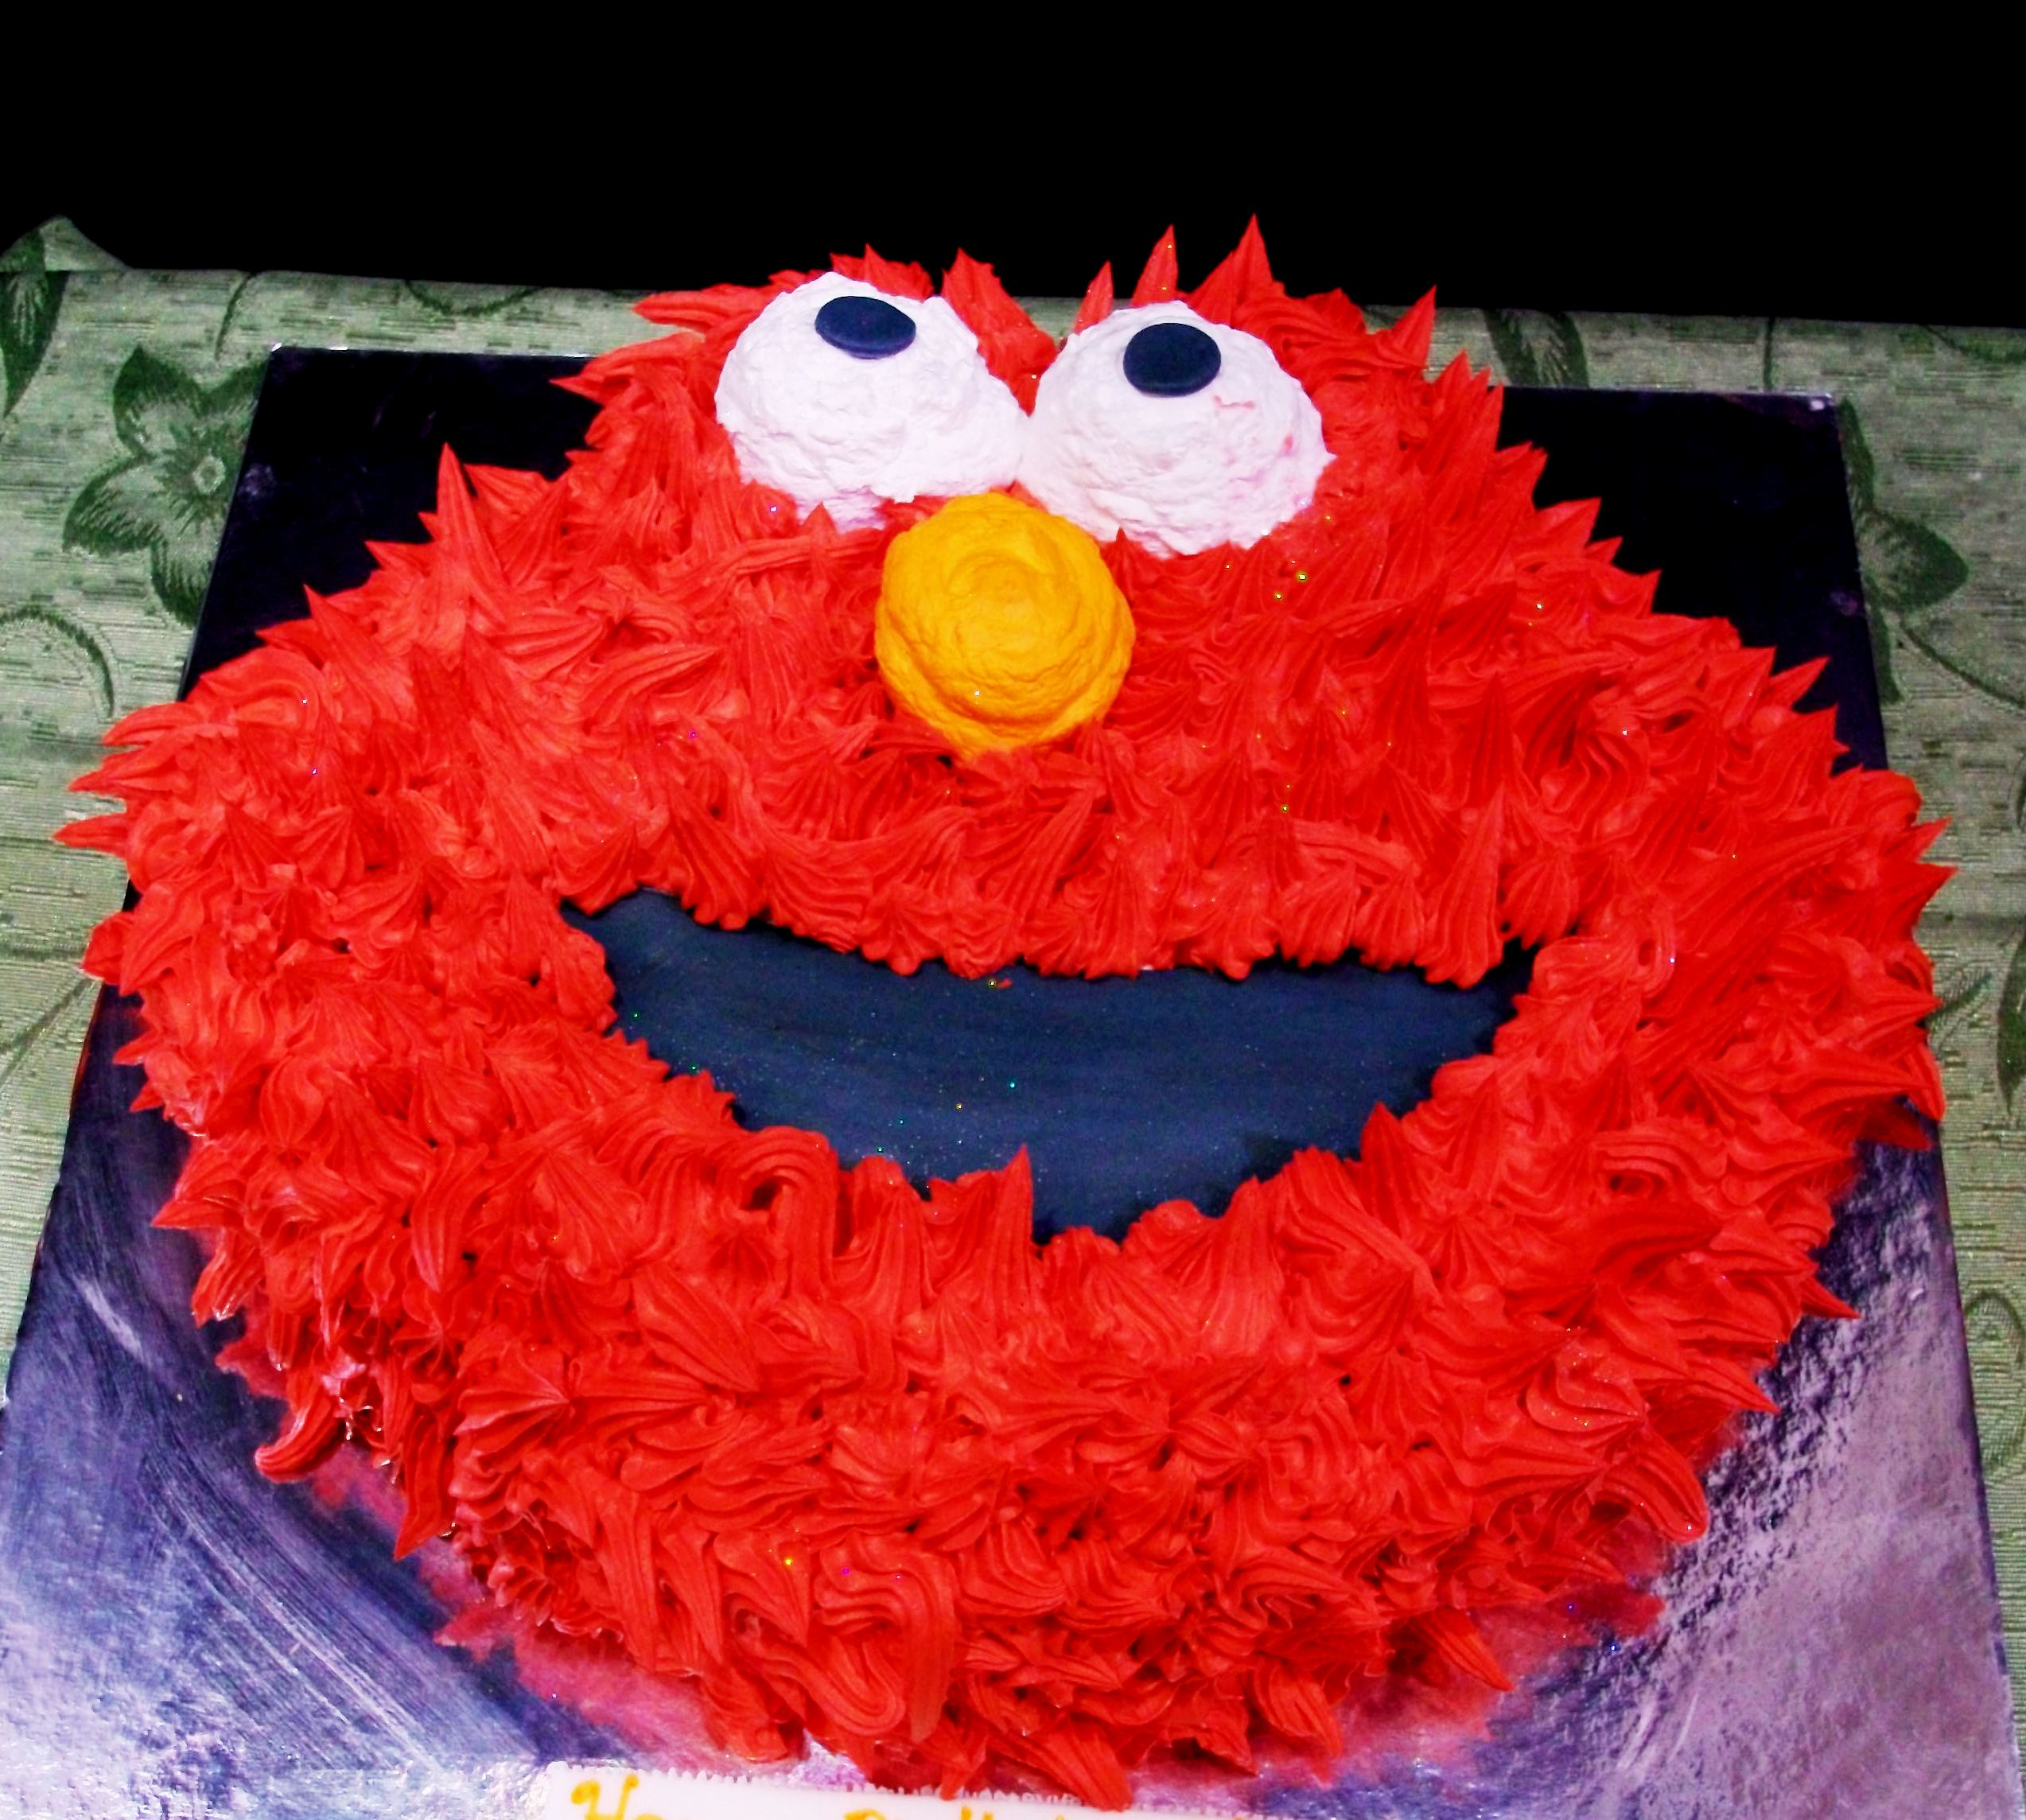 Awe Inspiring Elmo Cakes Decoration Ideas Little Birthday Cakes Personalised Birthday Cards Cominlily Jamesorg